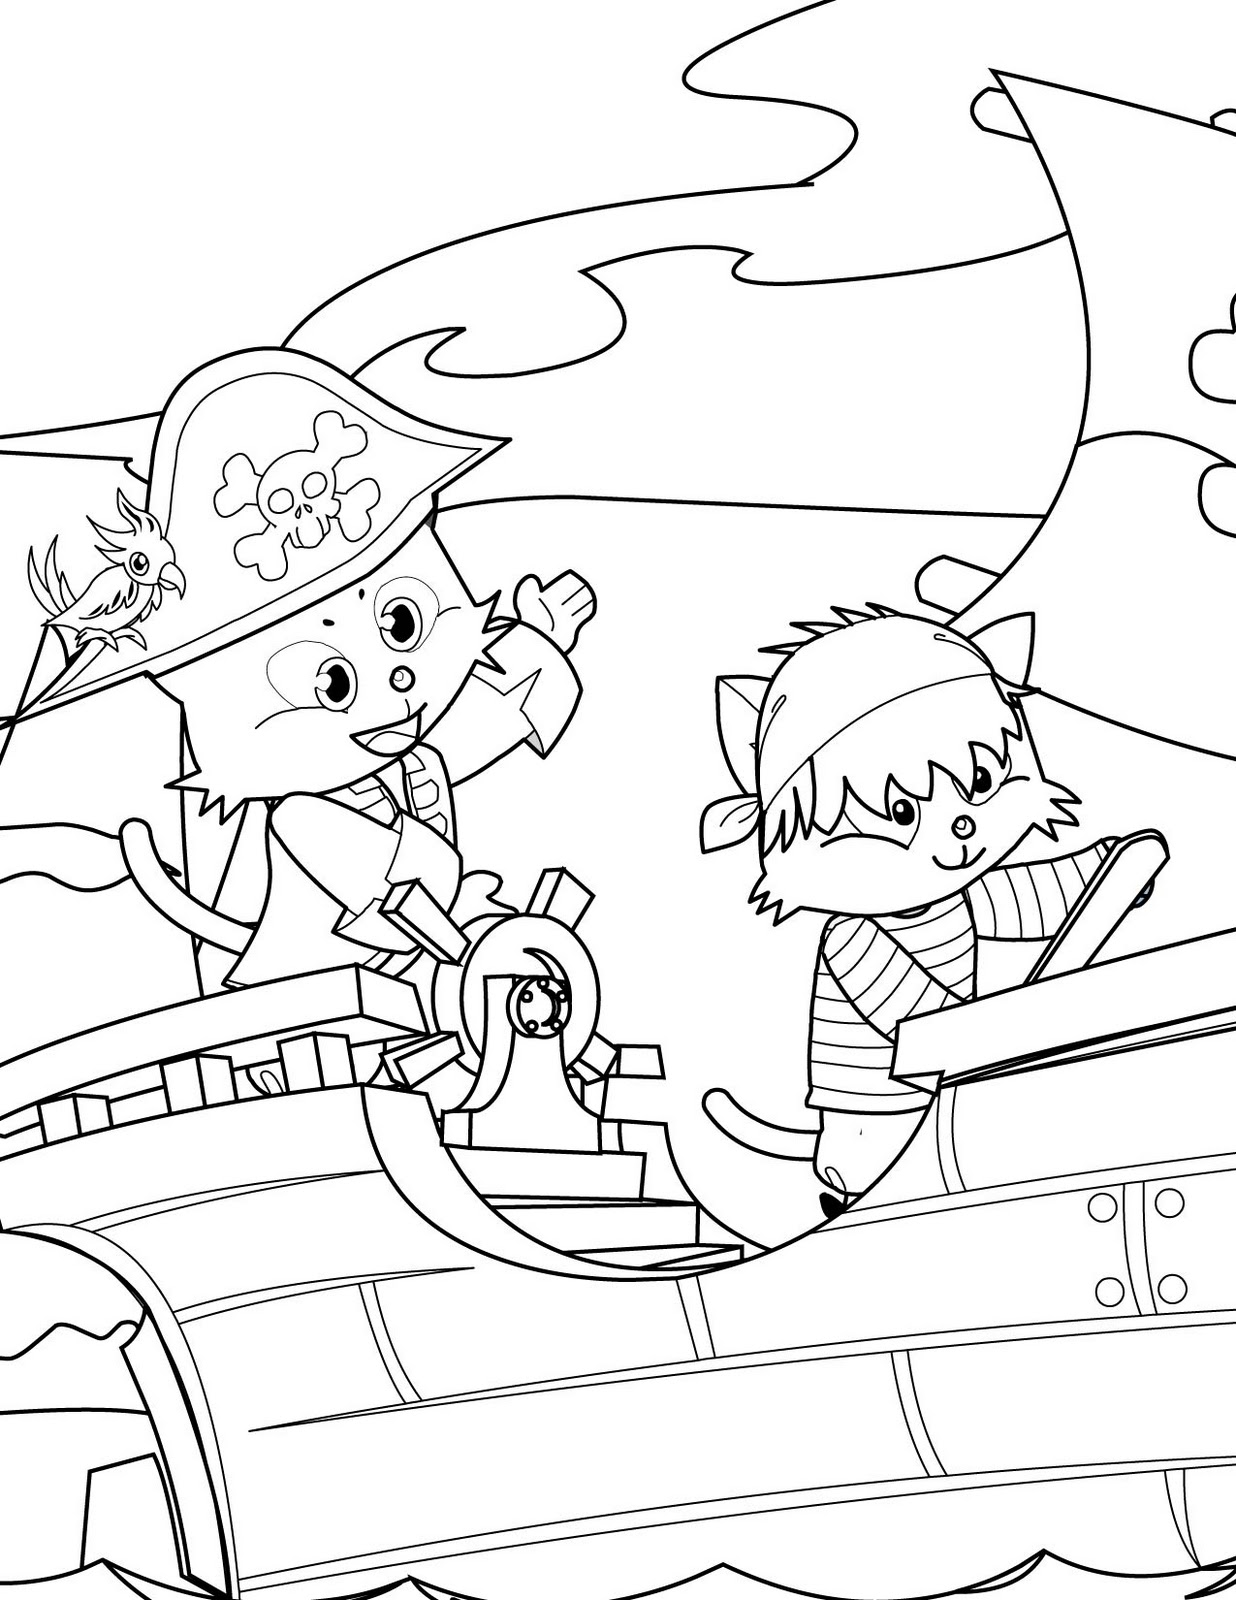 pirate coloring pirate ship coloring pages for adults coloring pages for pirate coloring